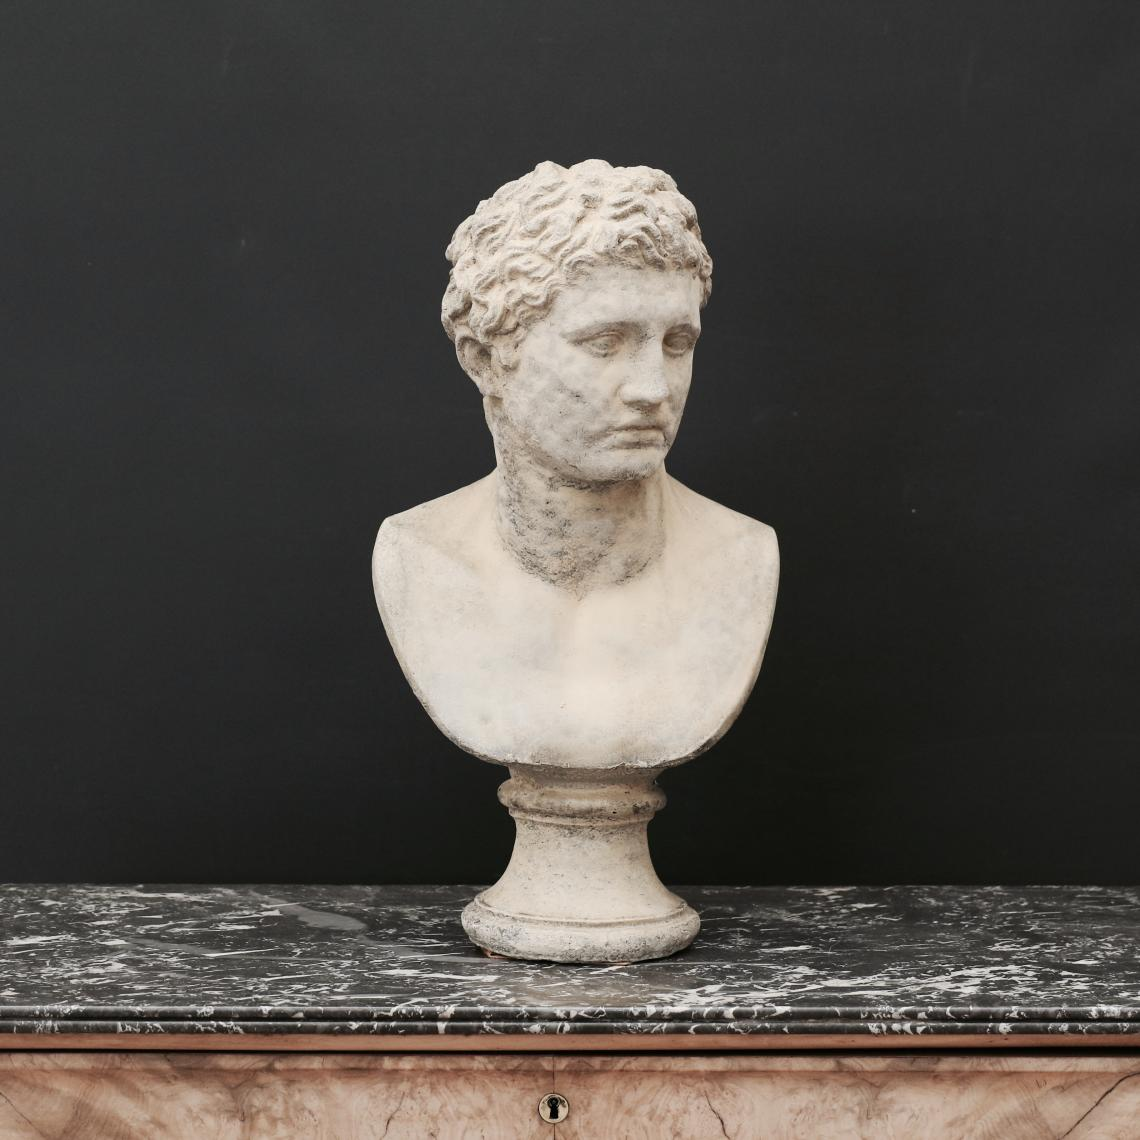 111-12 - Bust of Adonis